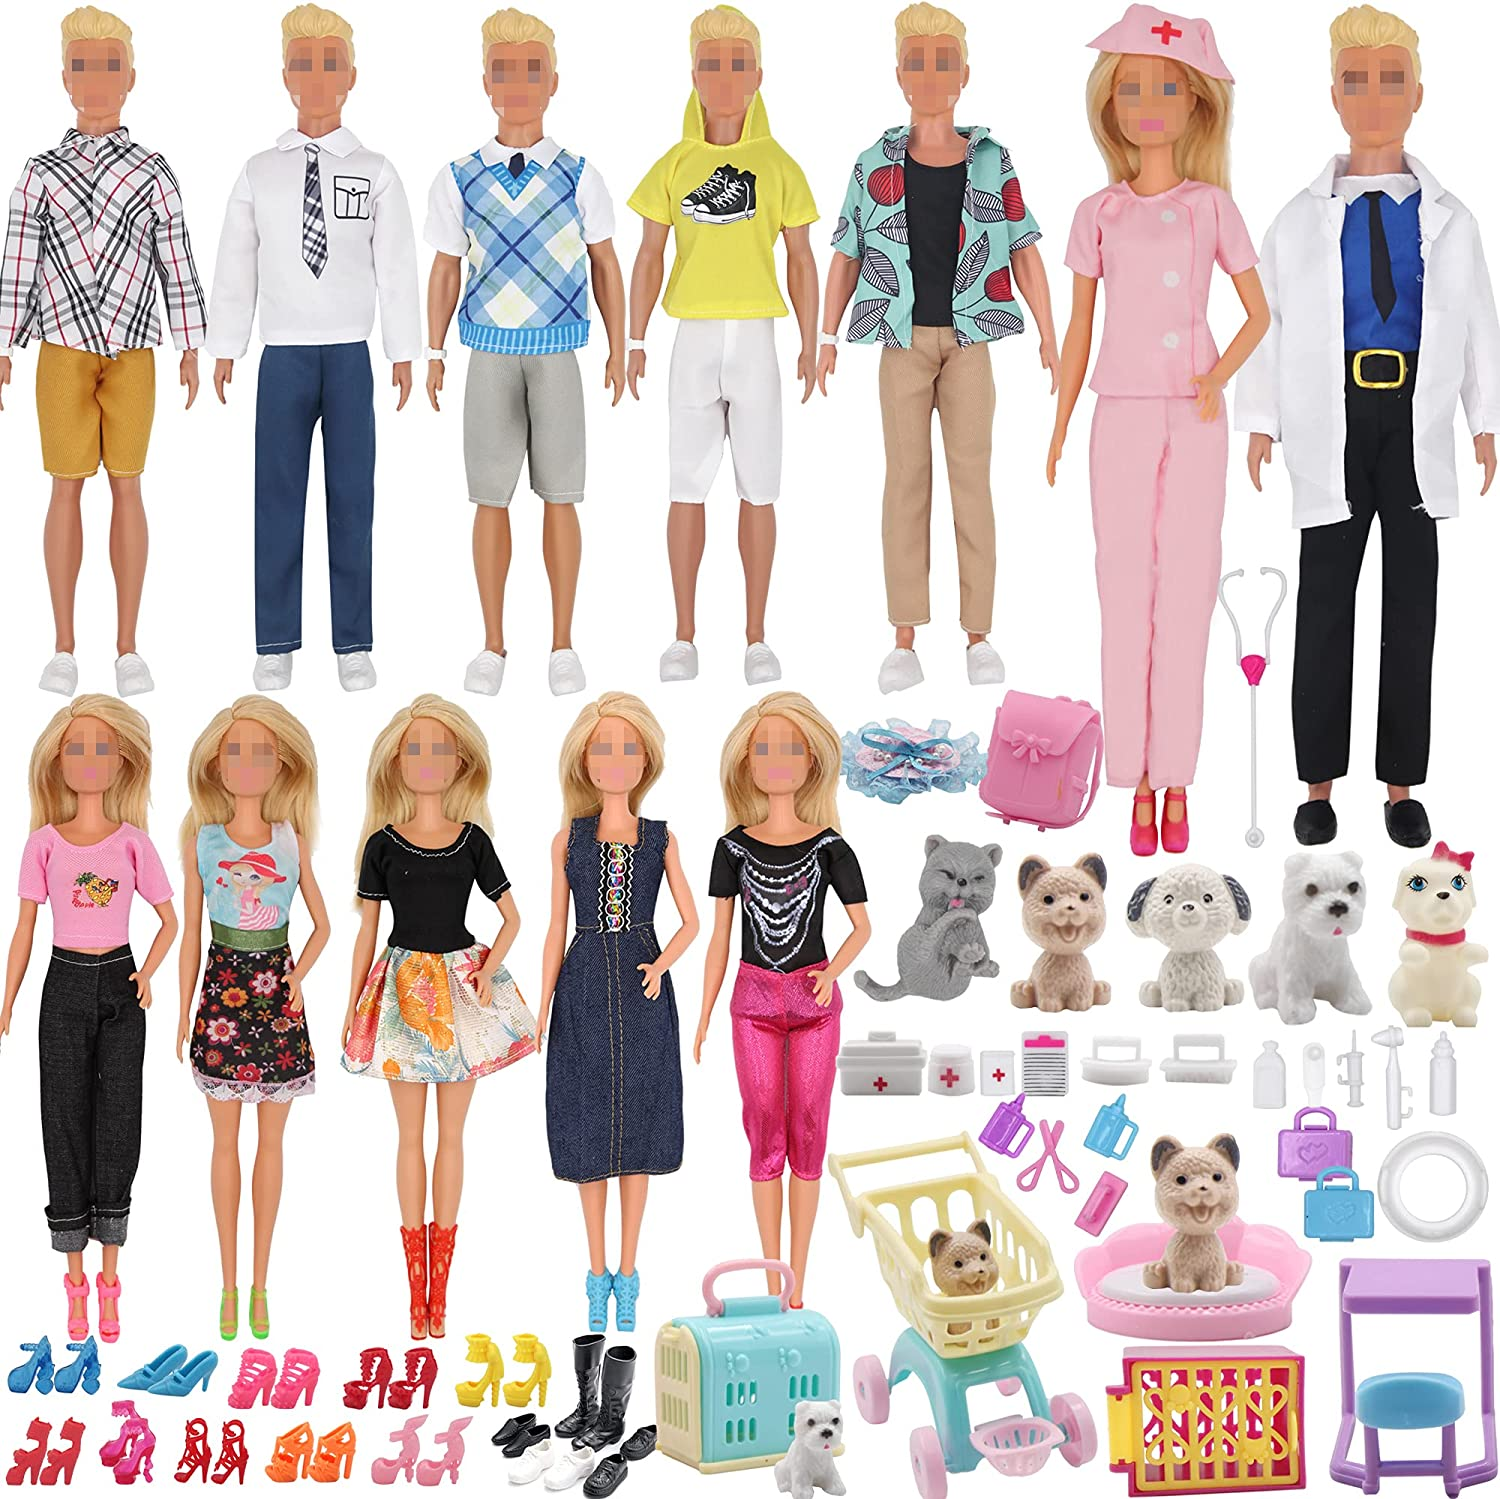 EuTengHao 12'' Boy Girl Doll Clothes OFFicial Se and Care Accessories Pet Max 52% OFF